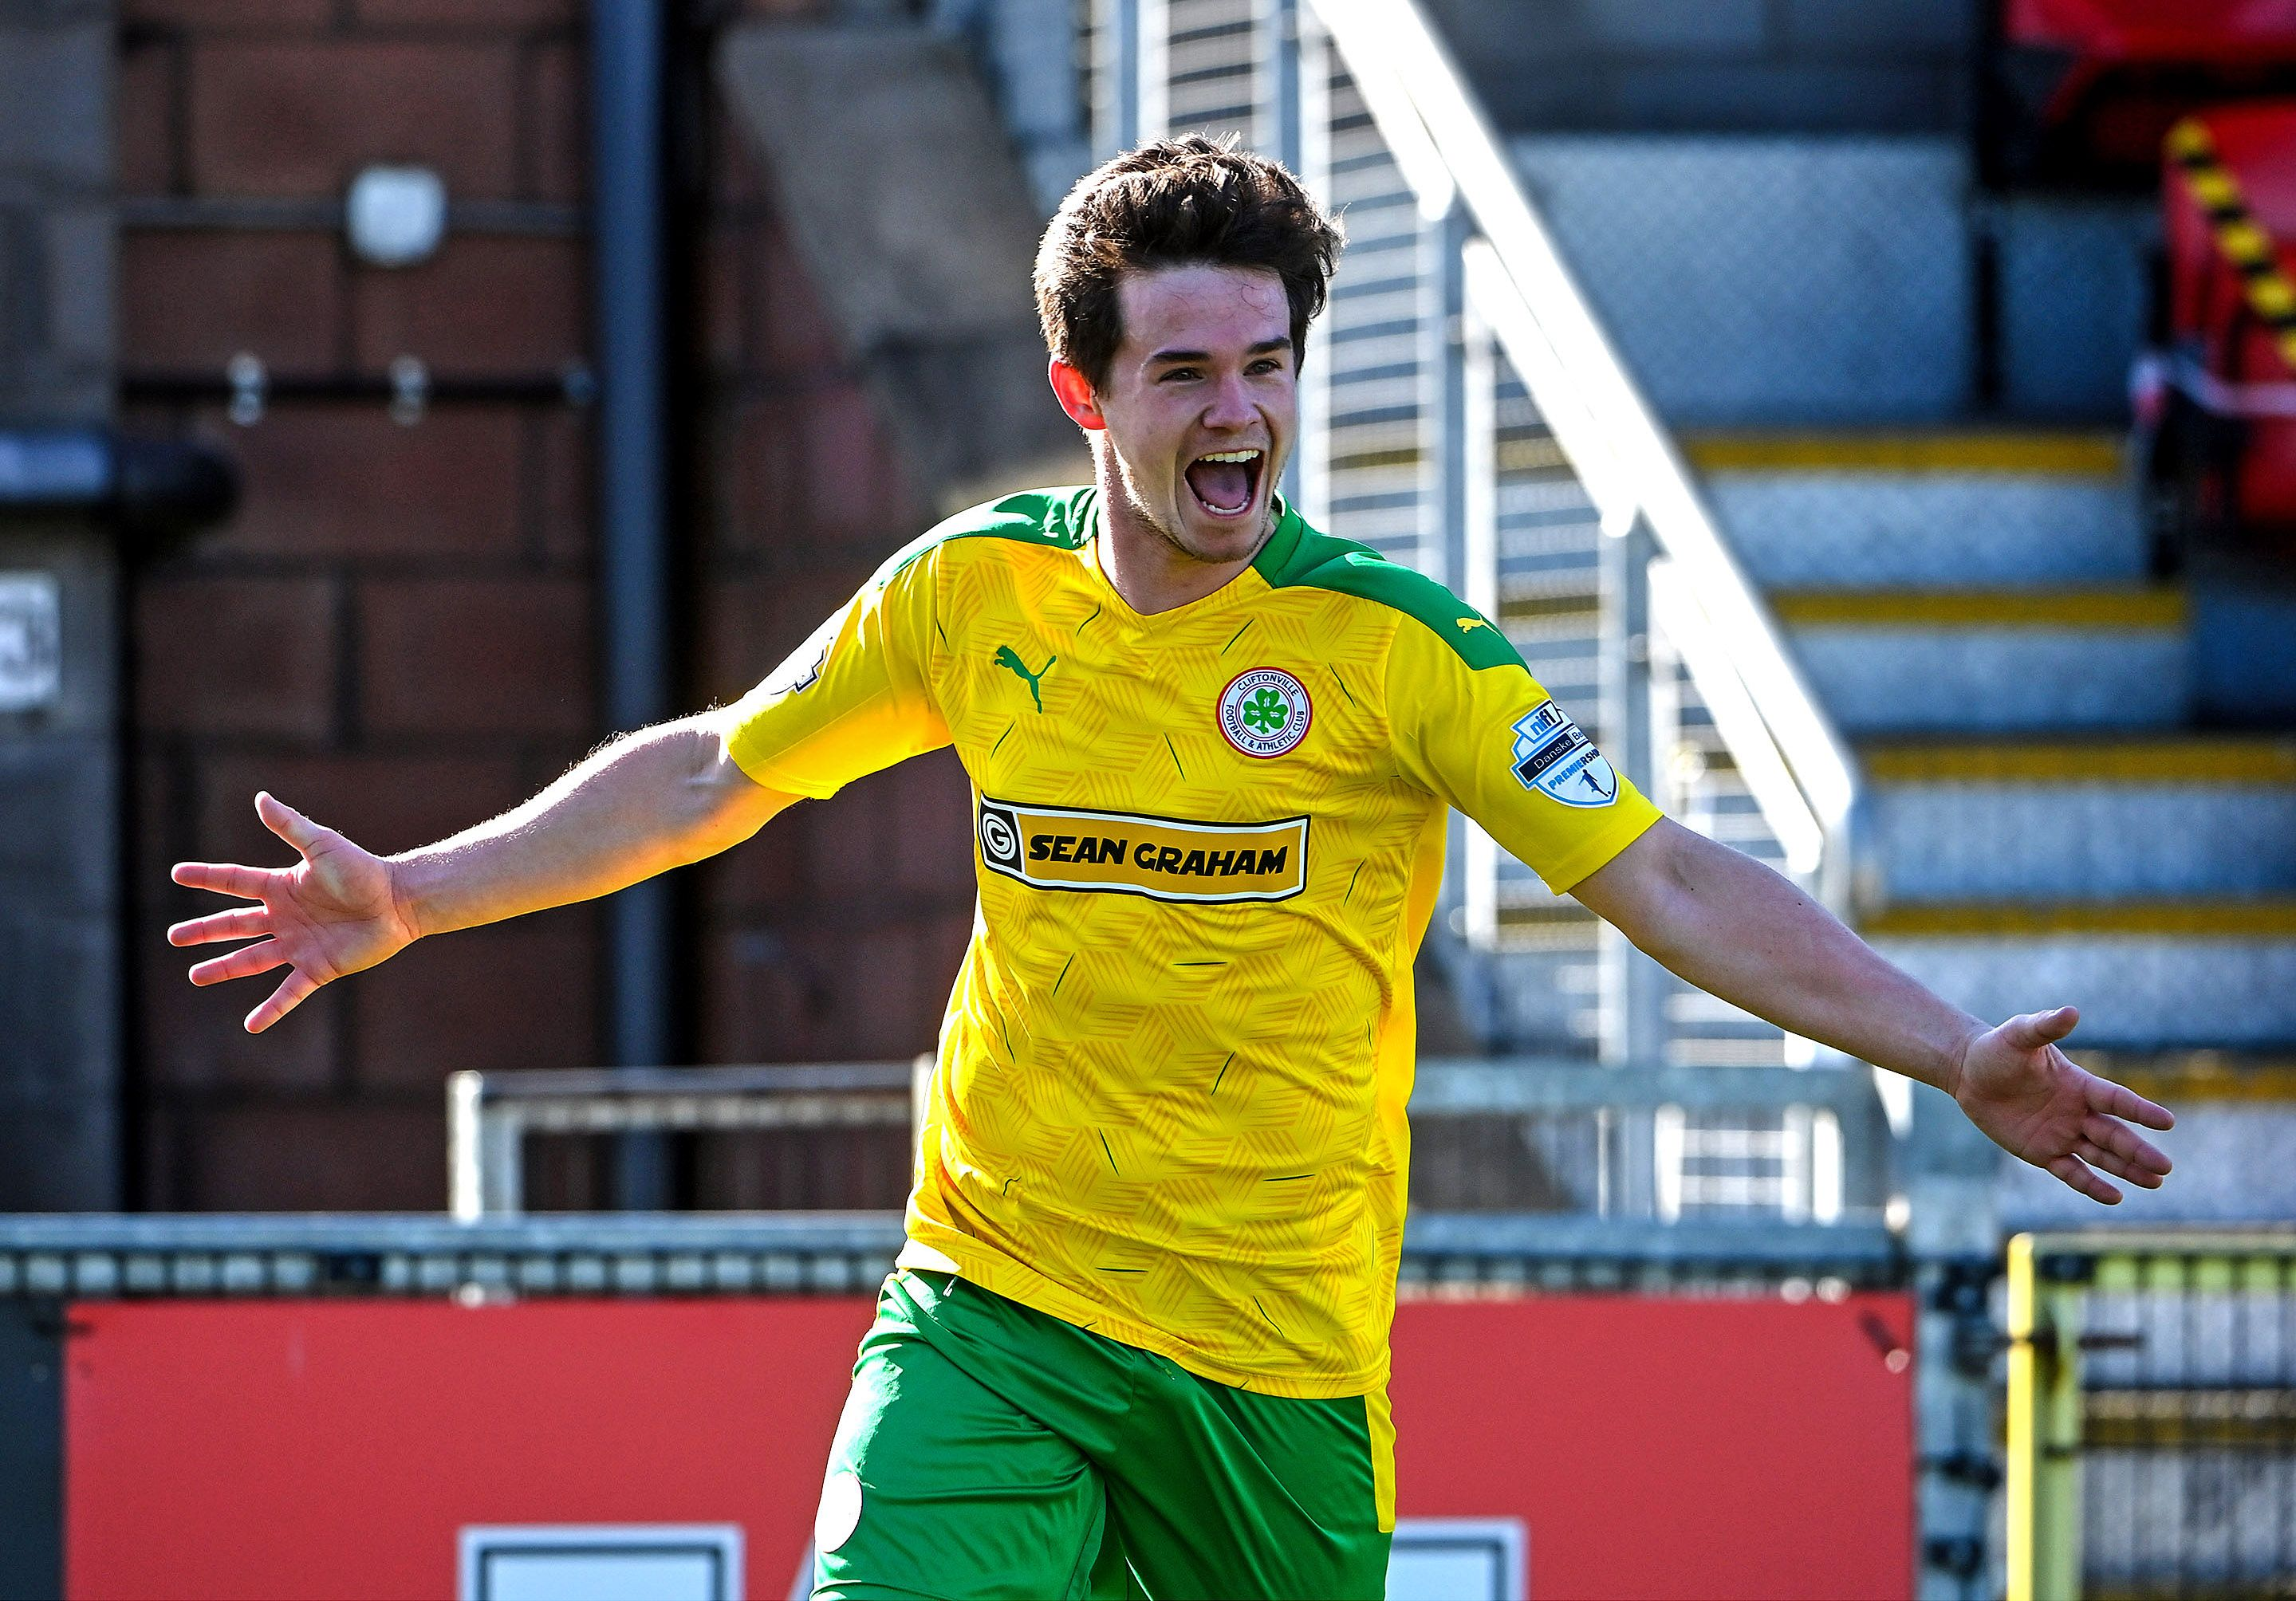 Michael McCrudden scored a hat-trick during Cliftonville\'s empathic 5-0 win over Carrick Rangers at Solitude on Saturday